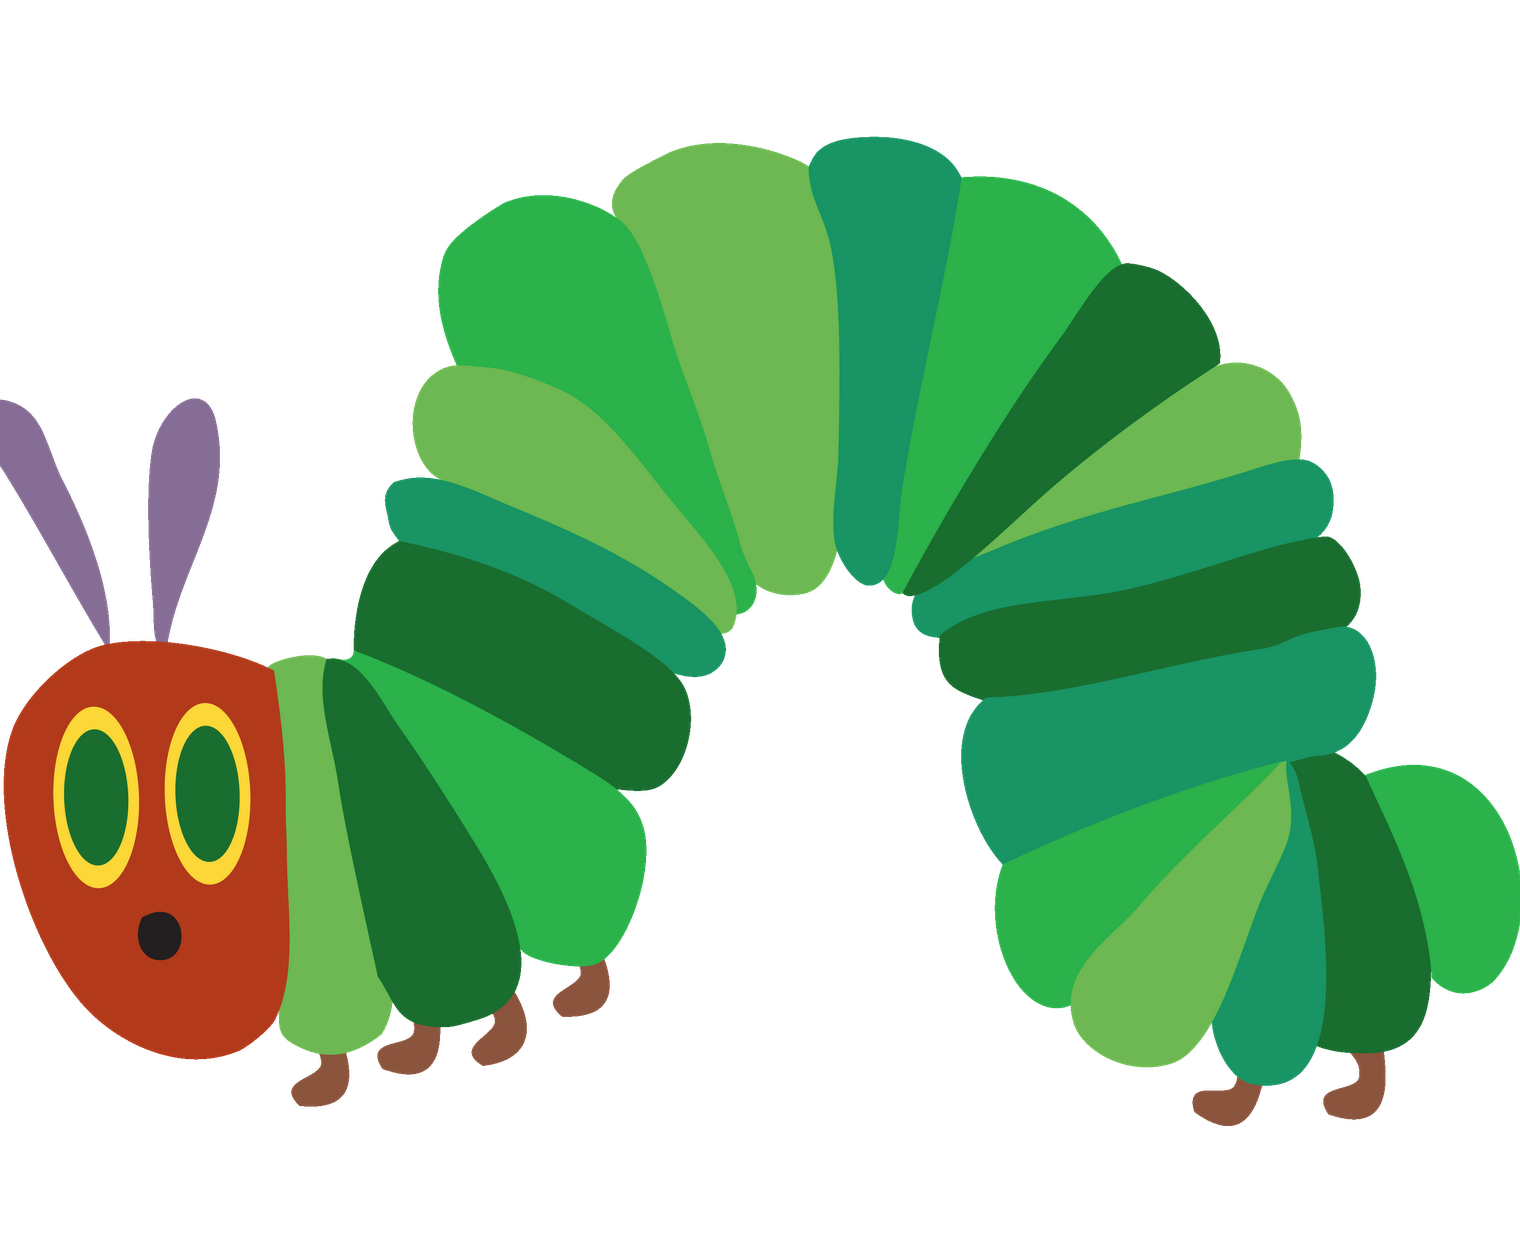 Cat gucciguanfangwang me caterpillar. Hungry clipart hungry family